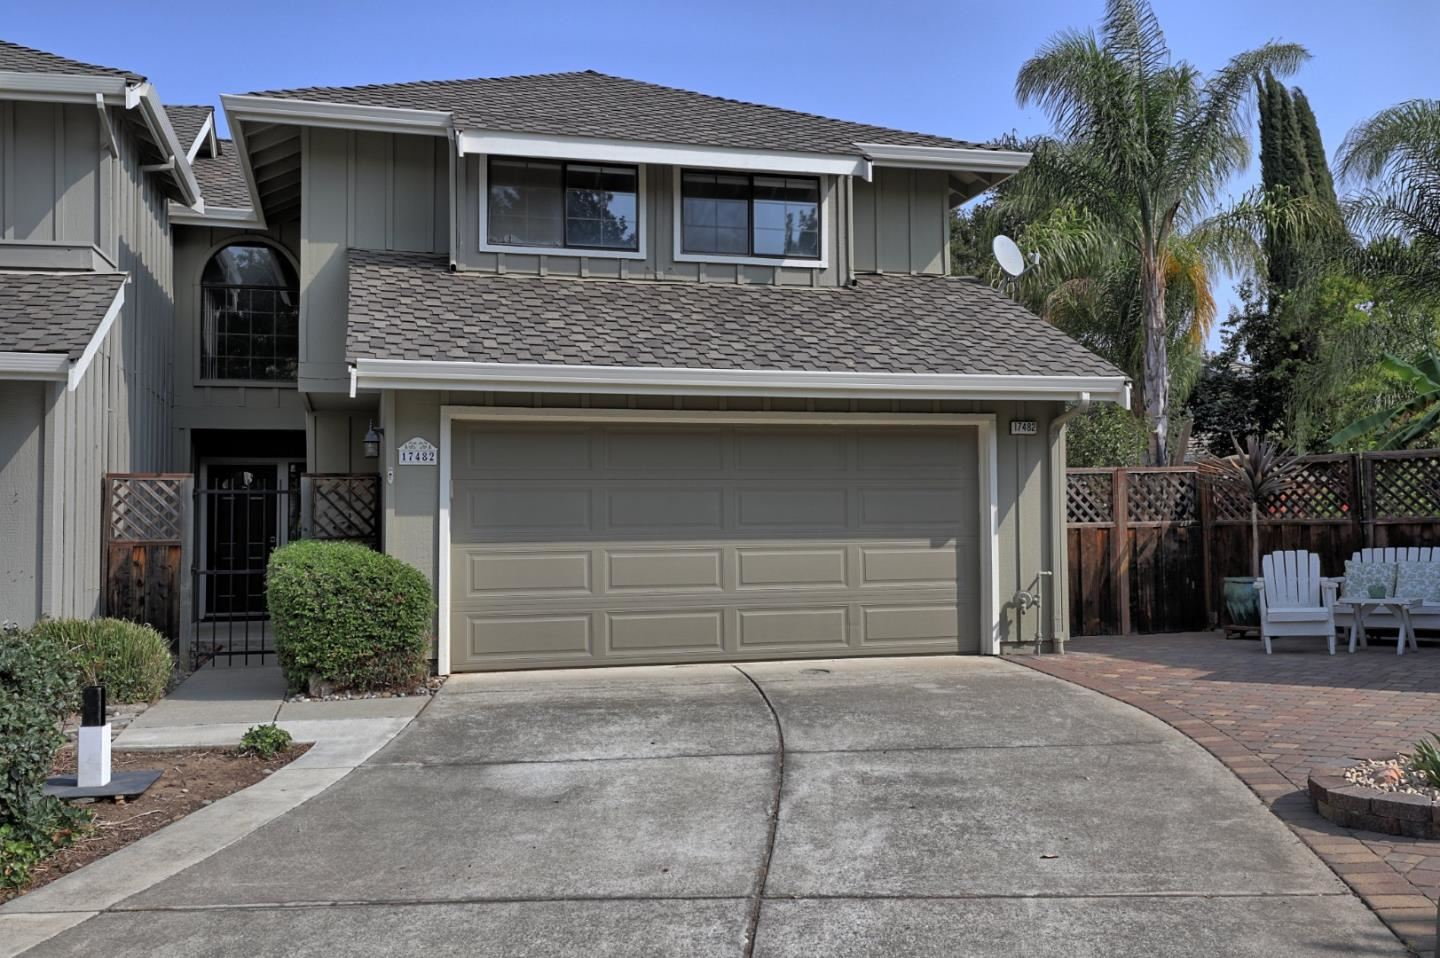 Photo for 17482 Carriage Lamp Way, MORGAN HILL, CA 95037 (MLS # ML81865357)